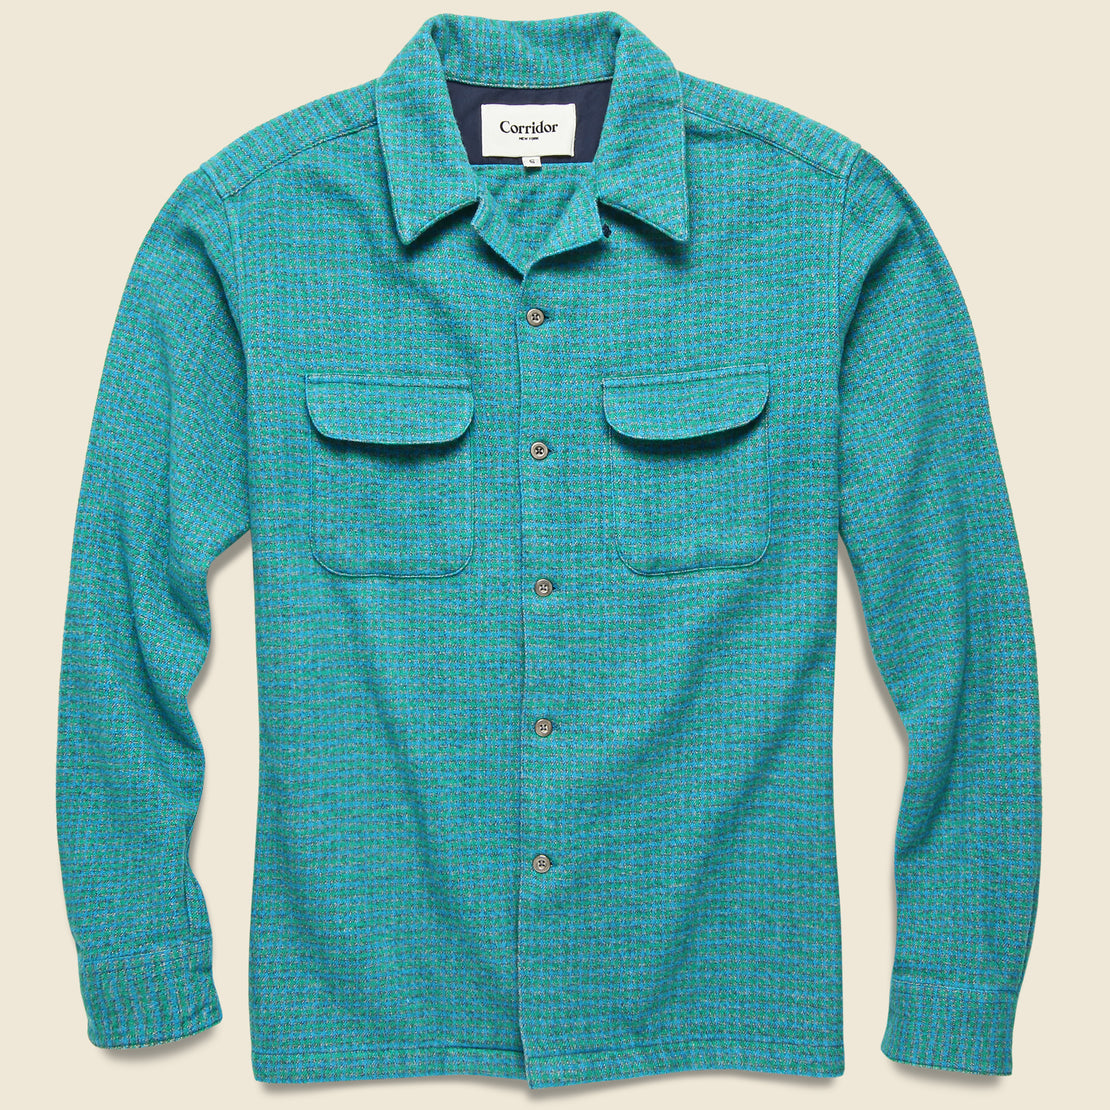 Corridor Jewel Tone Workshirt - Jewel